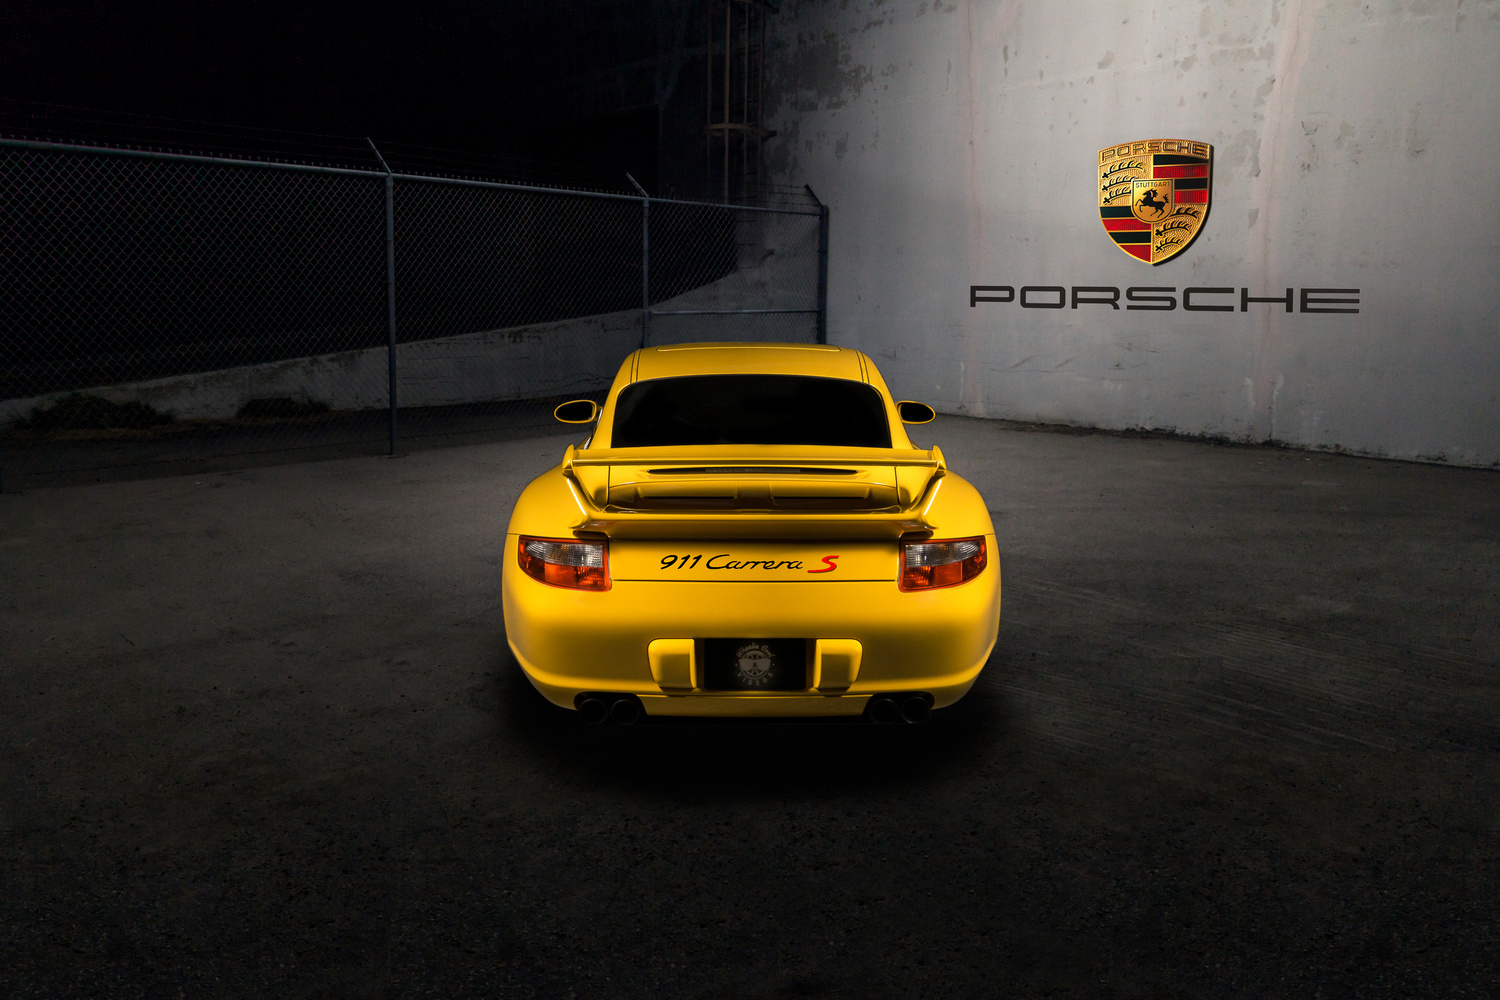 Yellow Porsche 911 Carrera S by Steven Hicks